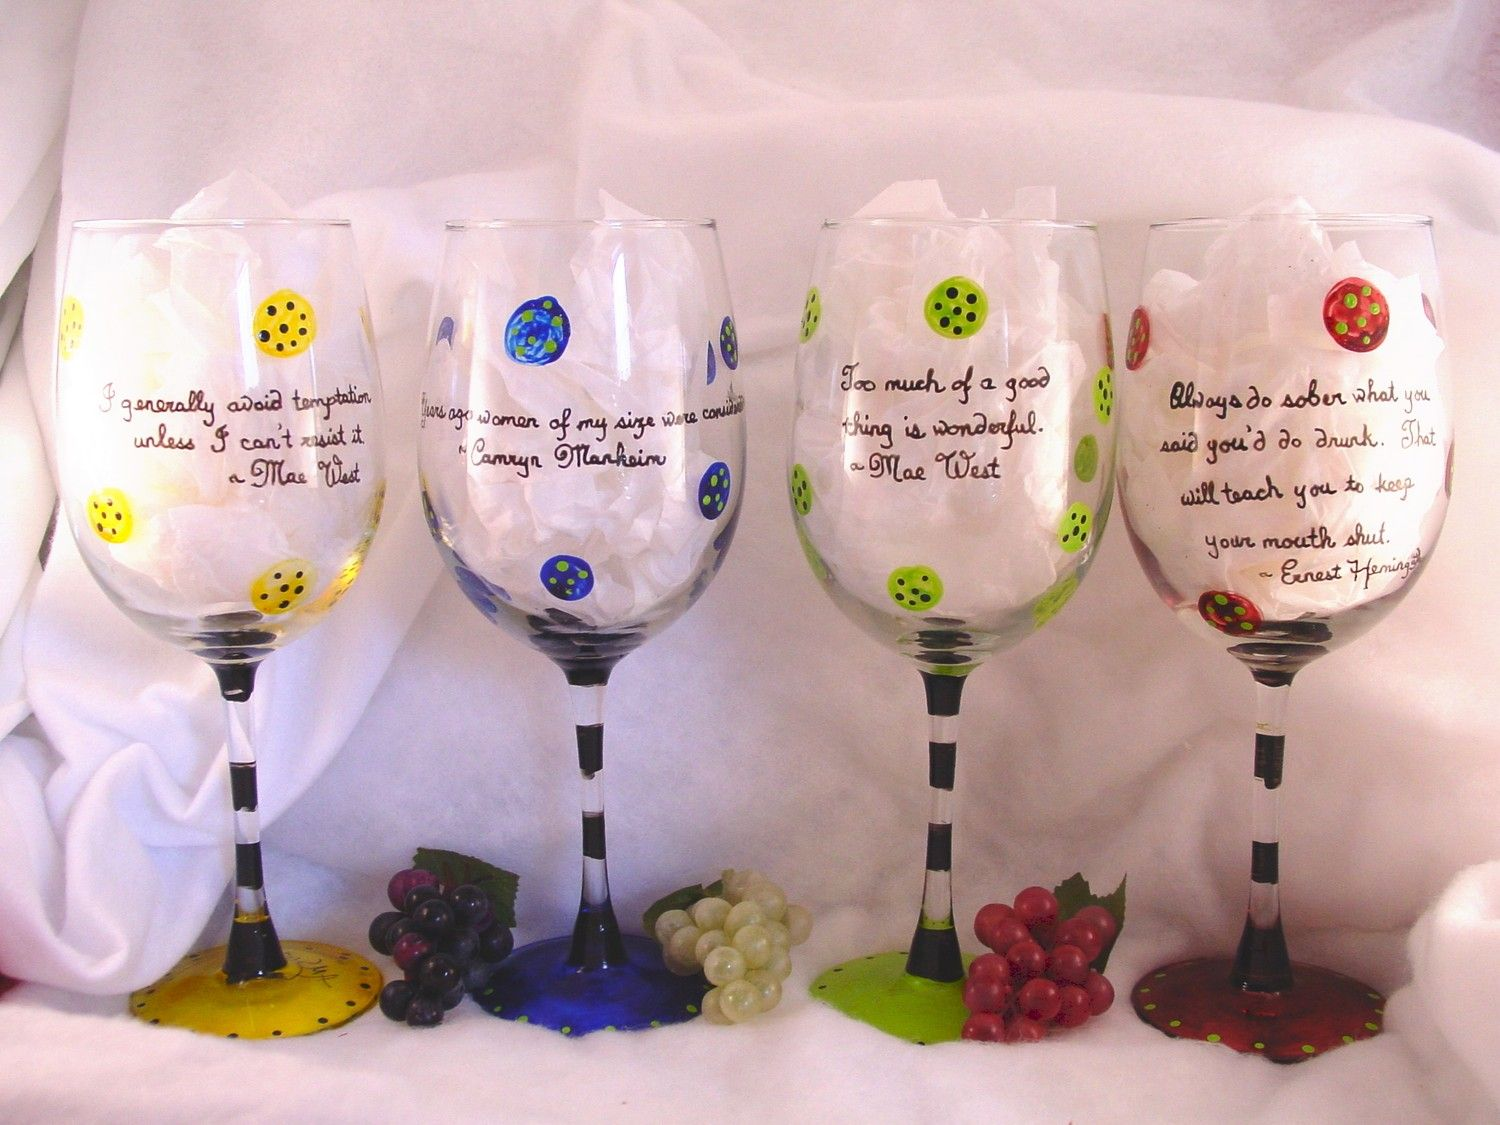 Hand painted contemporary wine glass with wine sayings by bojams, $32.00